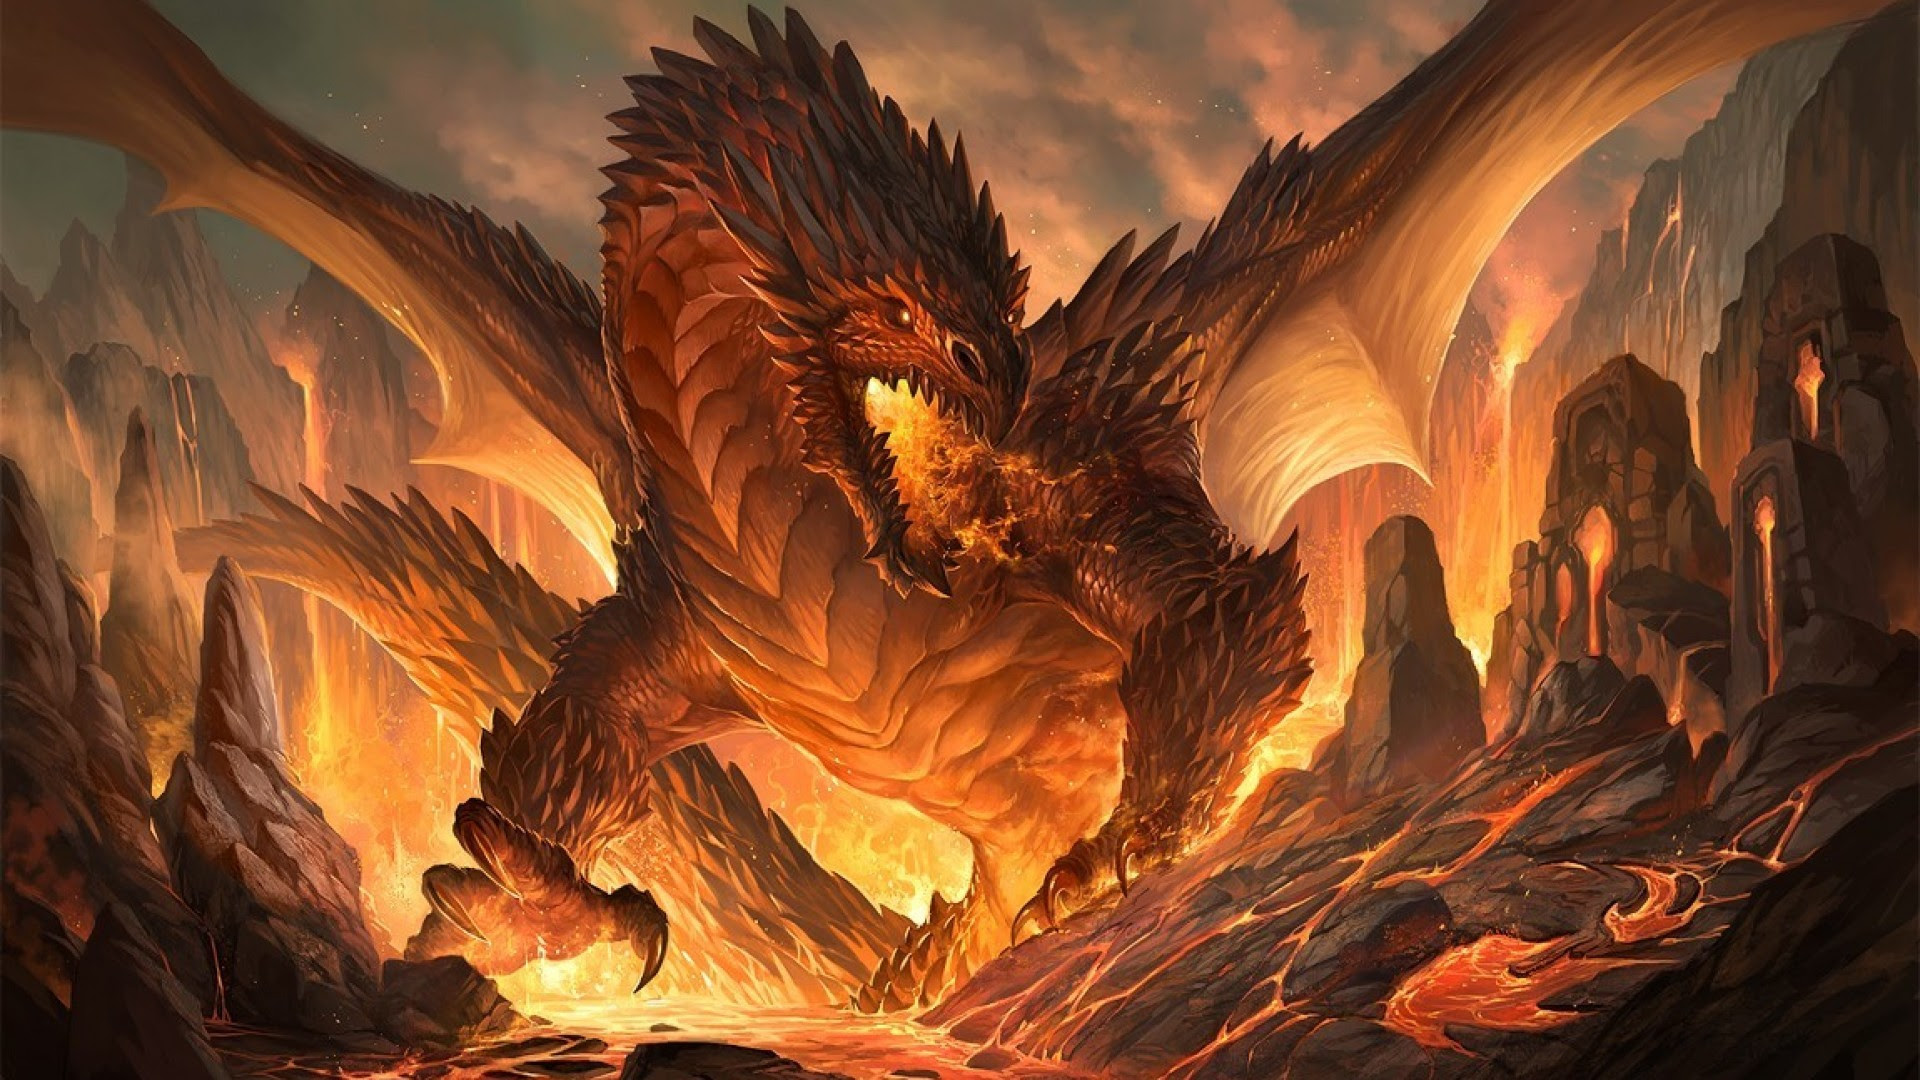 Wizards And Dragons Wallpapers 65 Images